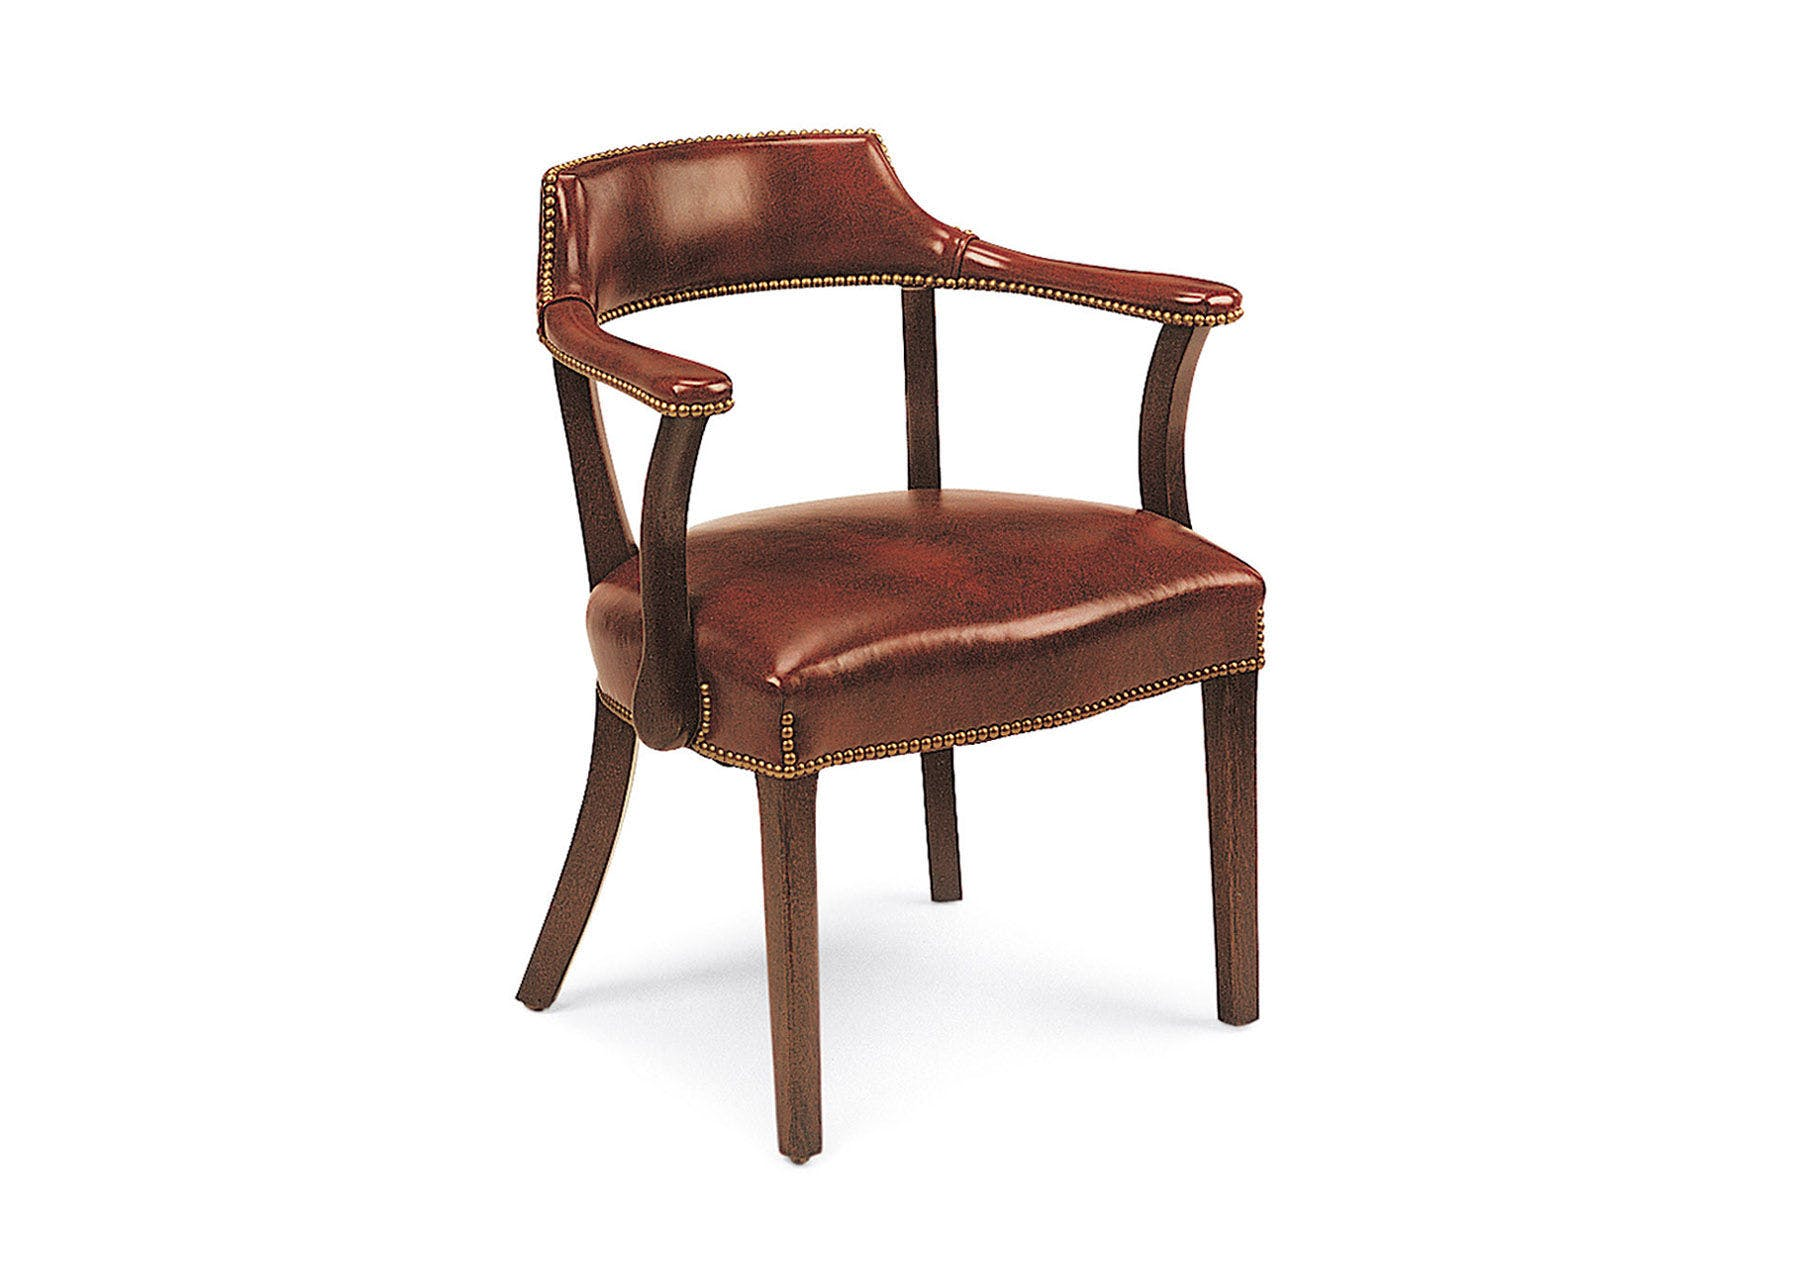 Accent Your Living Room with   Captains Chair